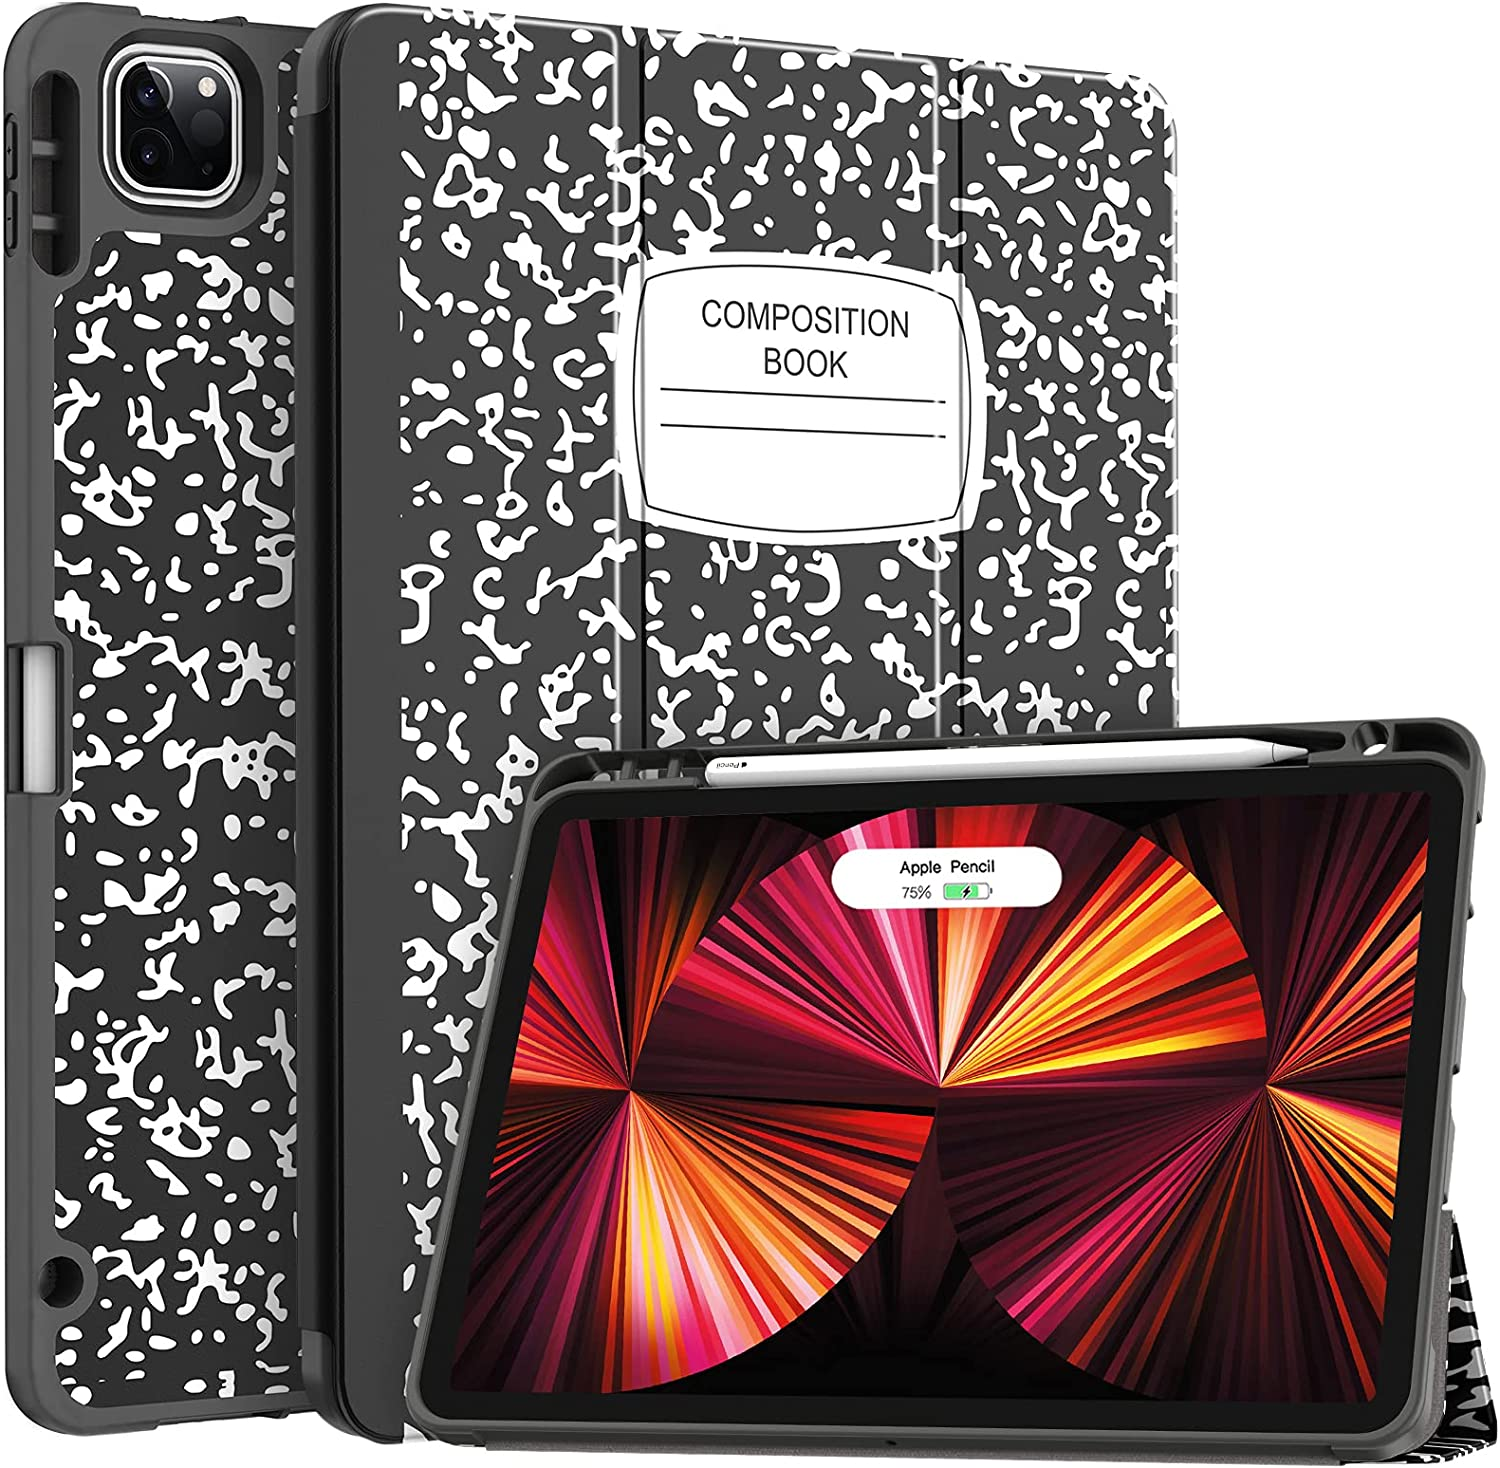 Soke New iPad Pro 11 Case 2021 with Pencil Holder - [Full Body Protection + 2nd Gen Apple Pencil Charging + Auto Wake/Sleep], Soft TPU Back Cover for 2021 iPad Pro 11 inch(Book Black)